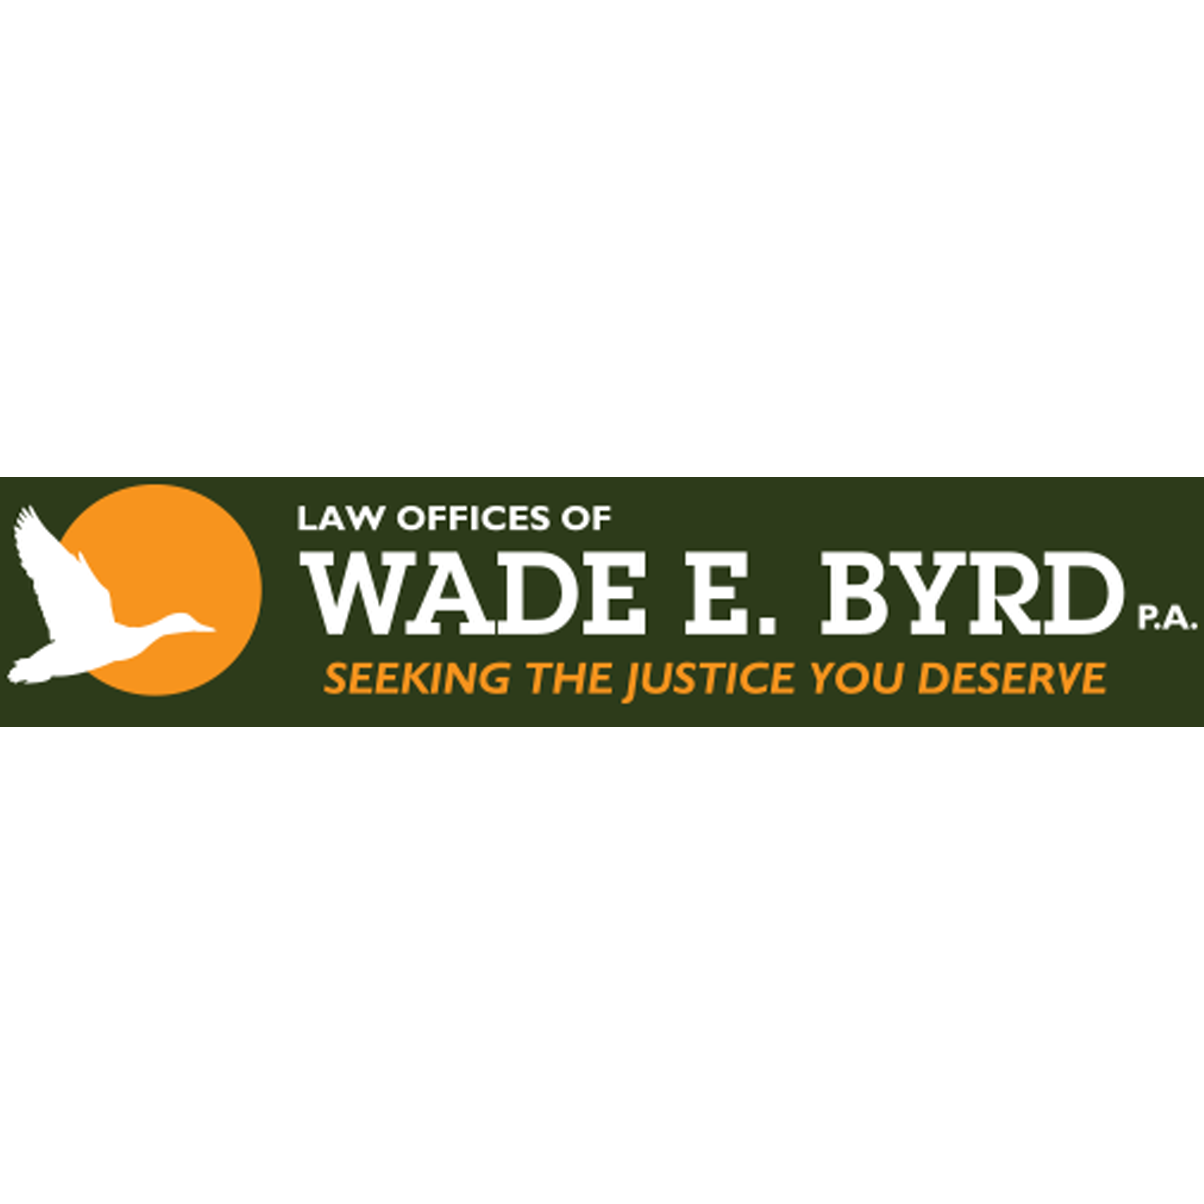 Law Offices of Wade E. Byrd, P.A.